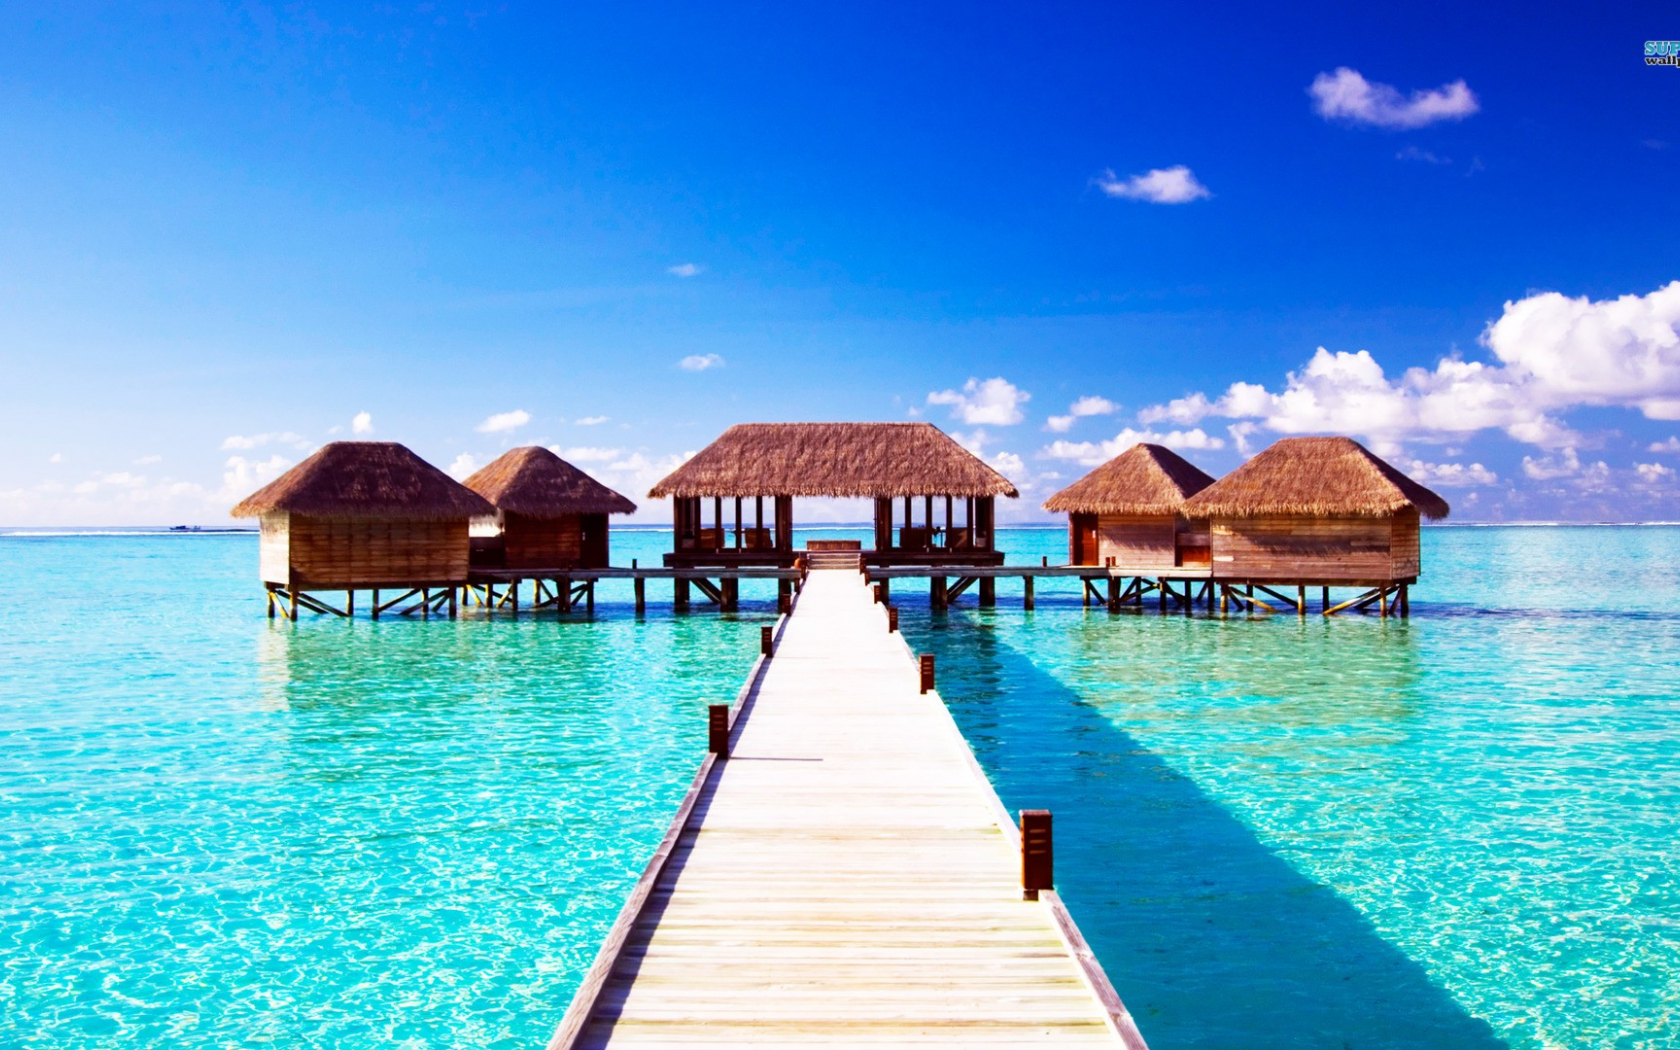 Free Download Wallpapers Beach Bar Bums 1920x1080 For Your